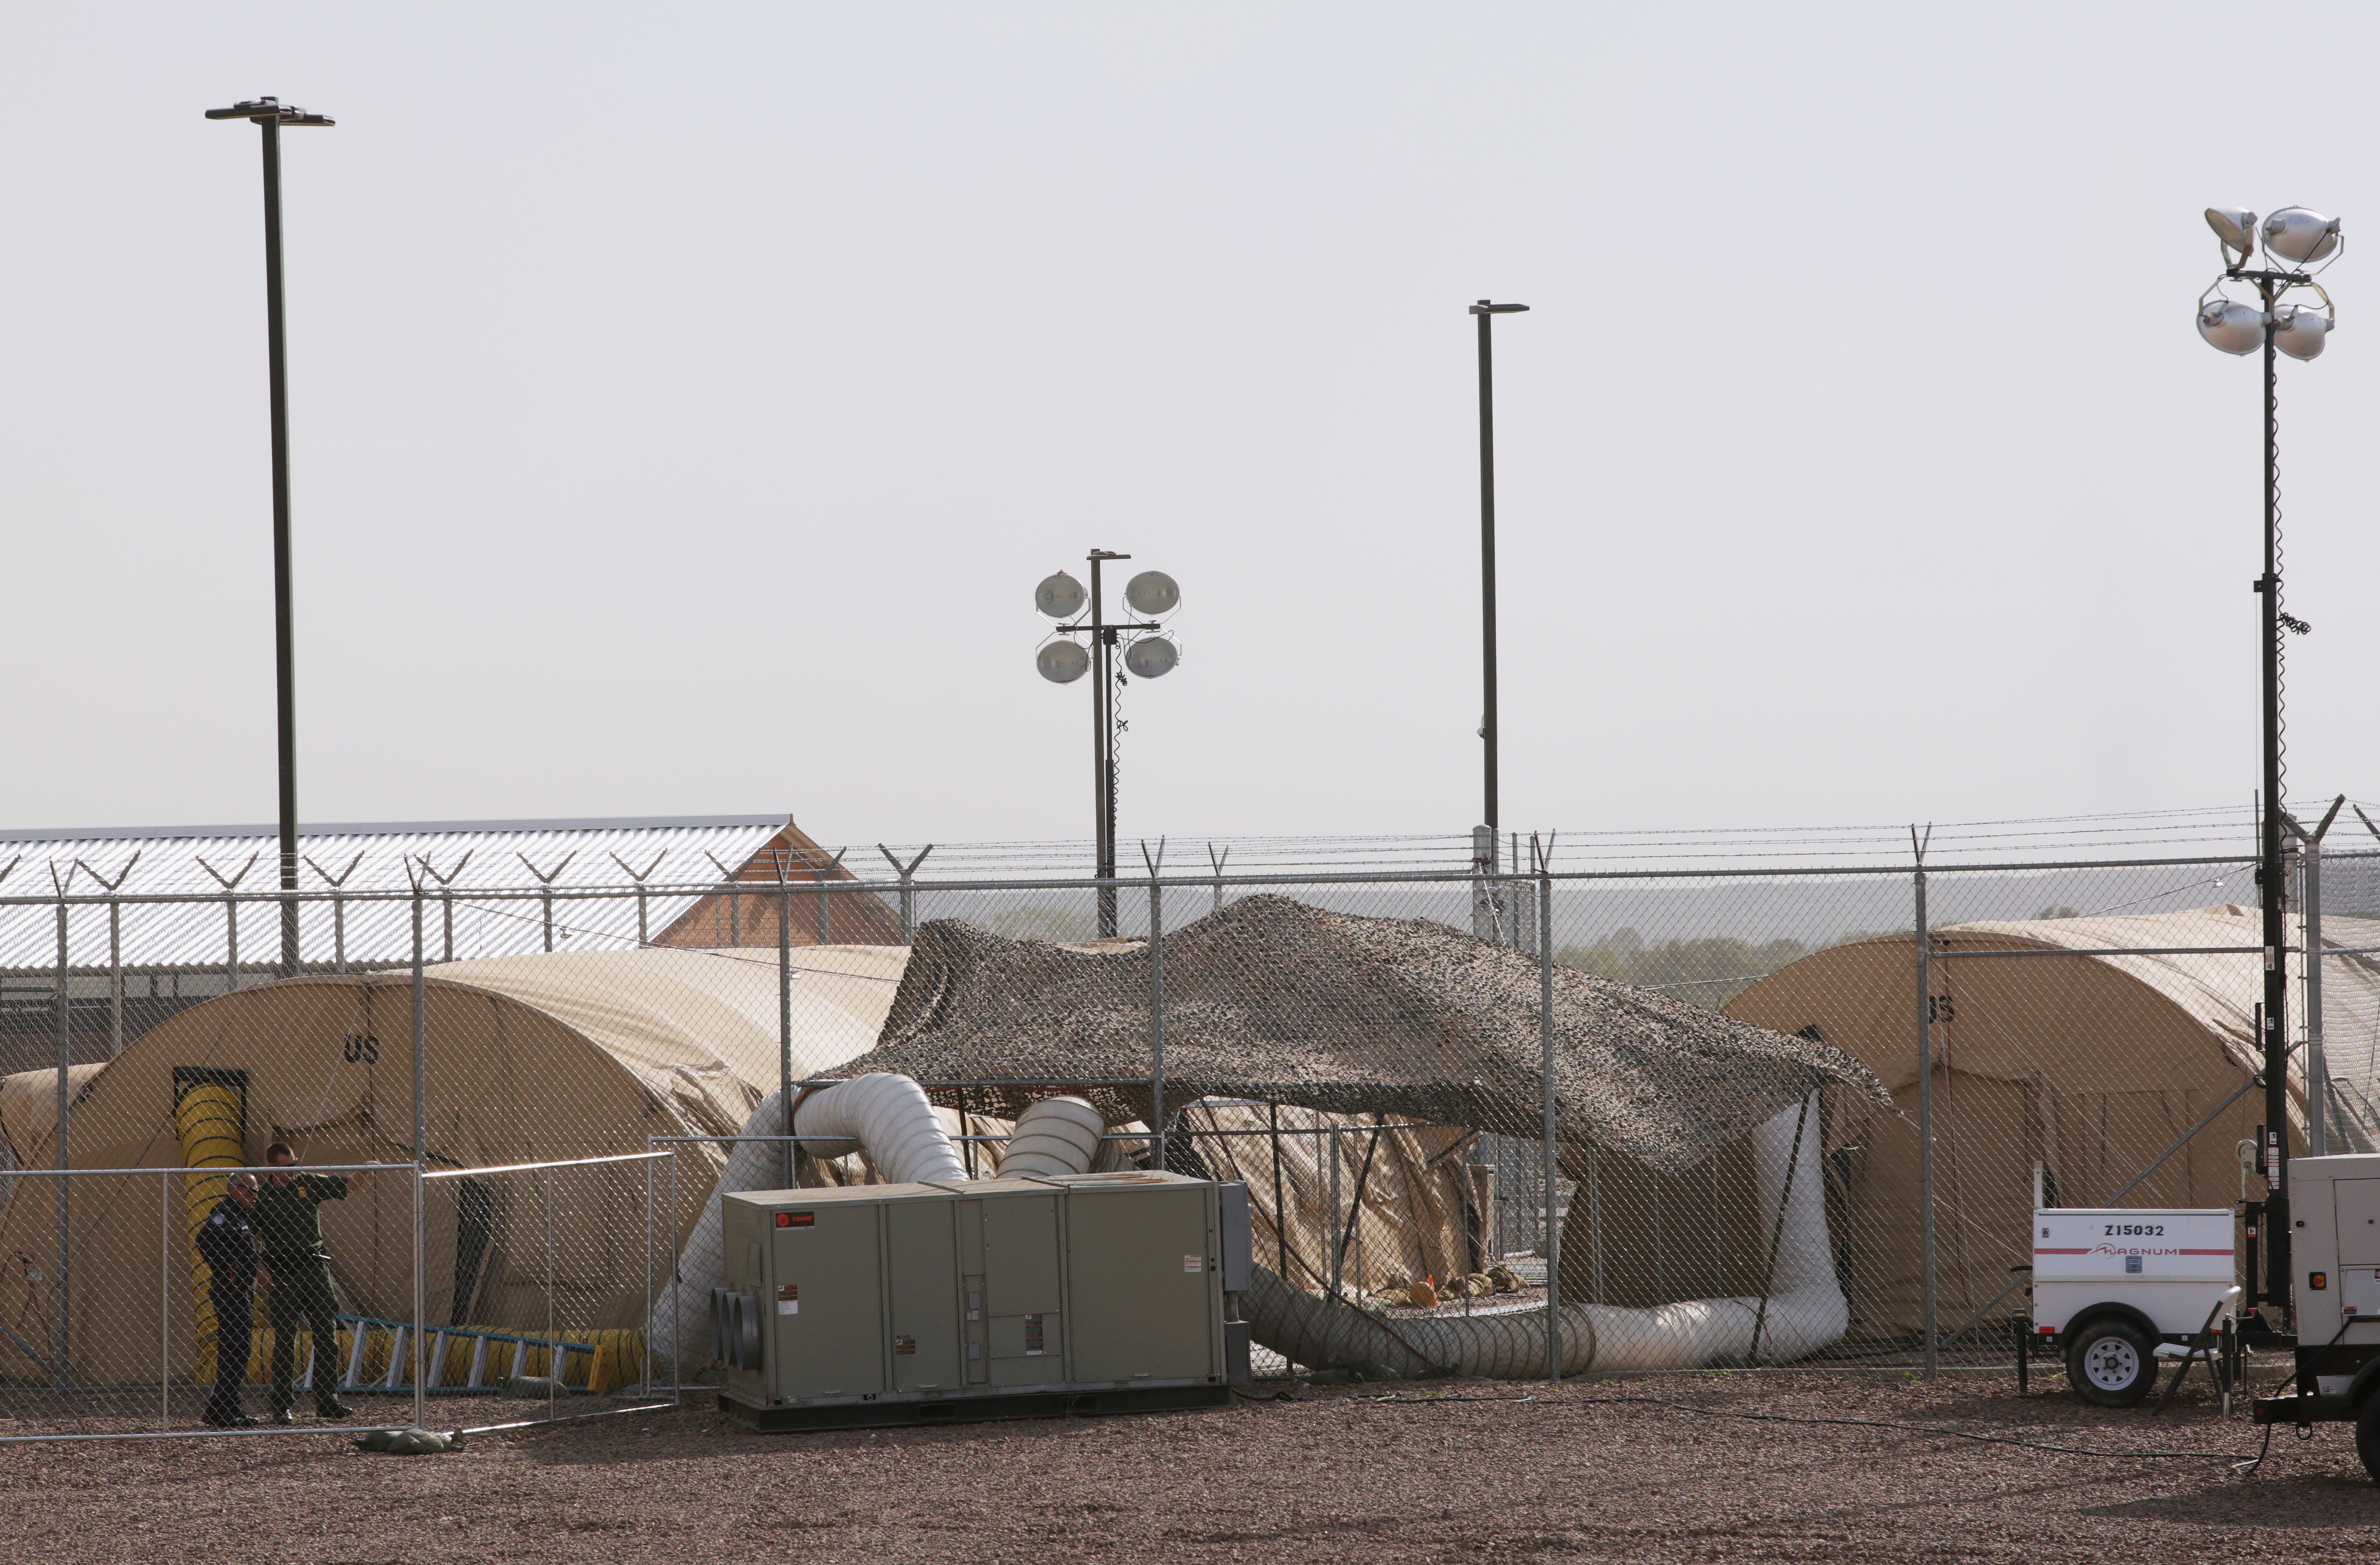 FILE PHOTO: A general view shows the U.S. Customs and Border Protection's Border Patrol station facilities in Clint